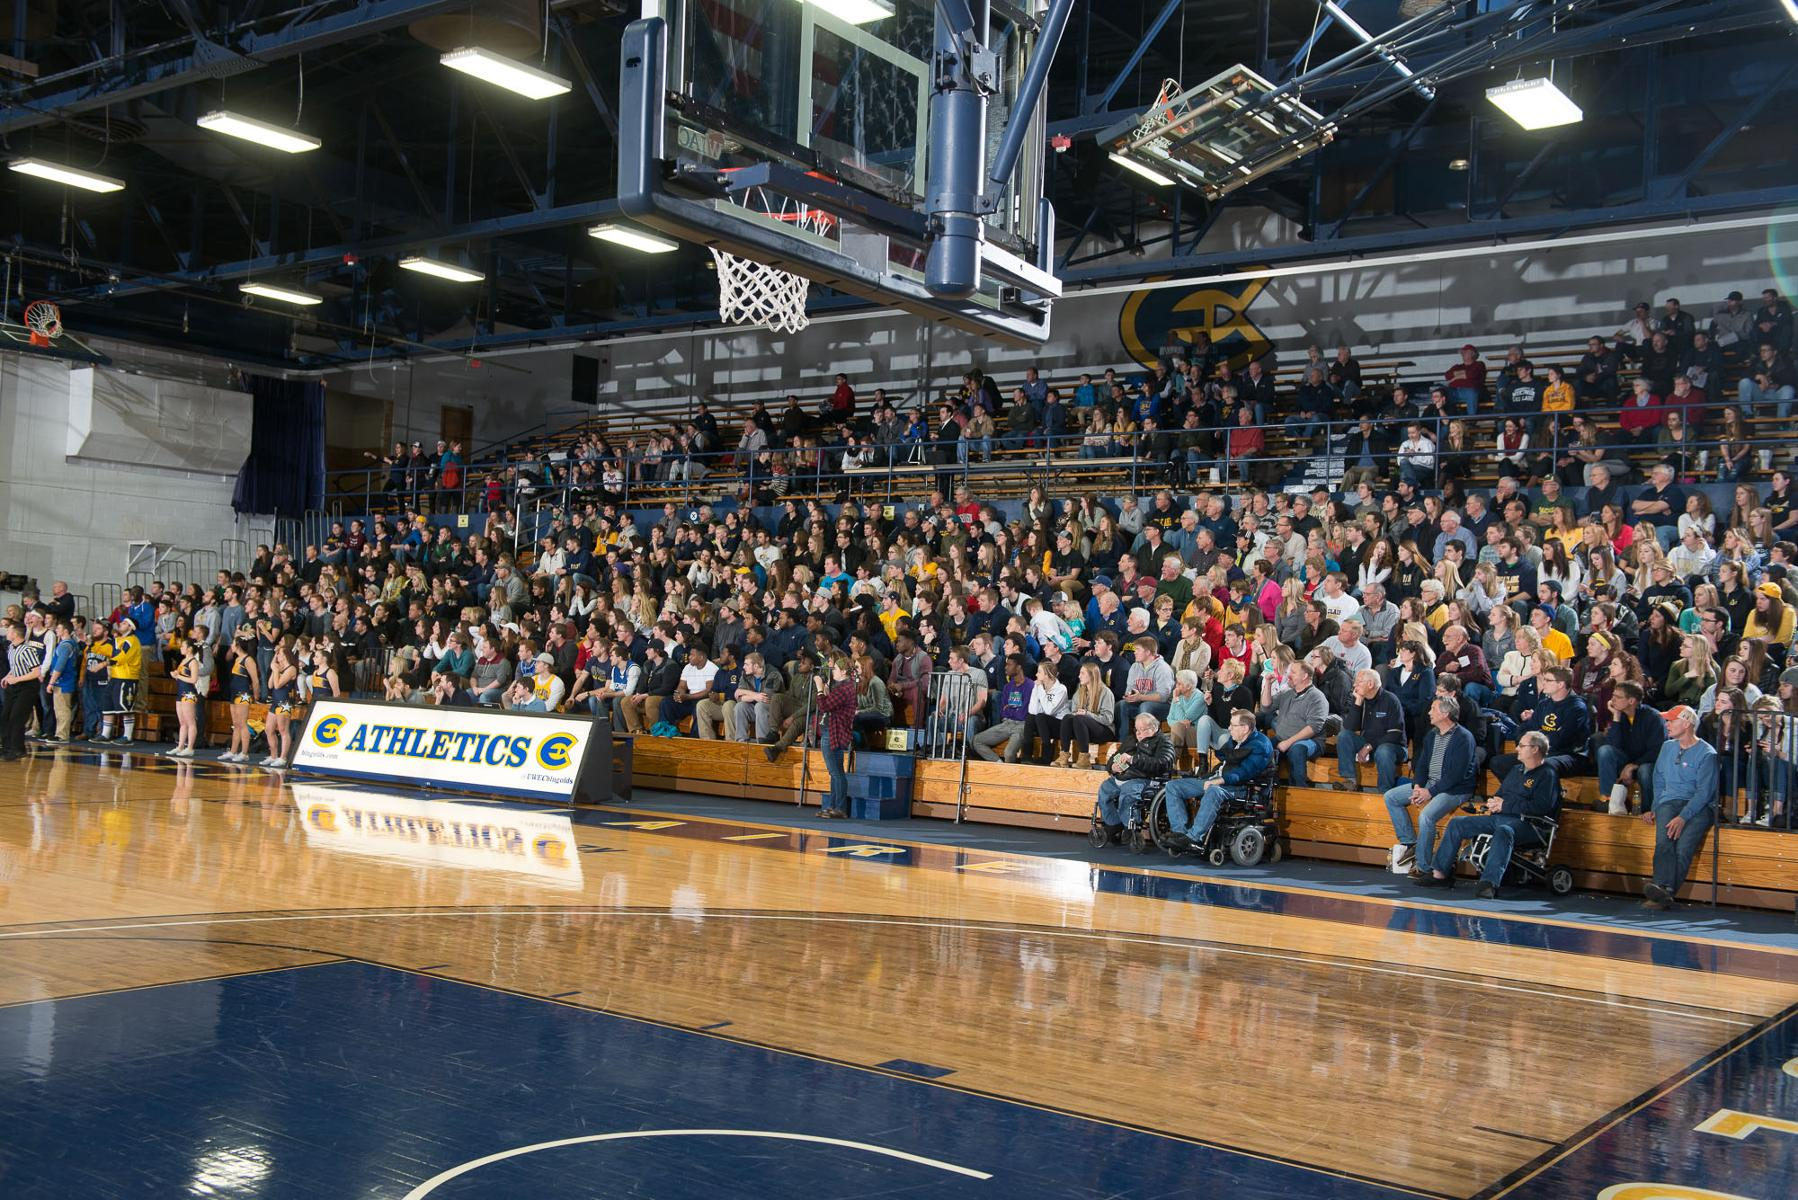 Basketball programs score high in Division III attendance